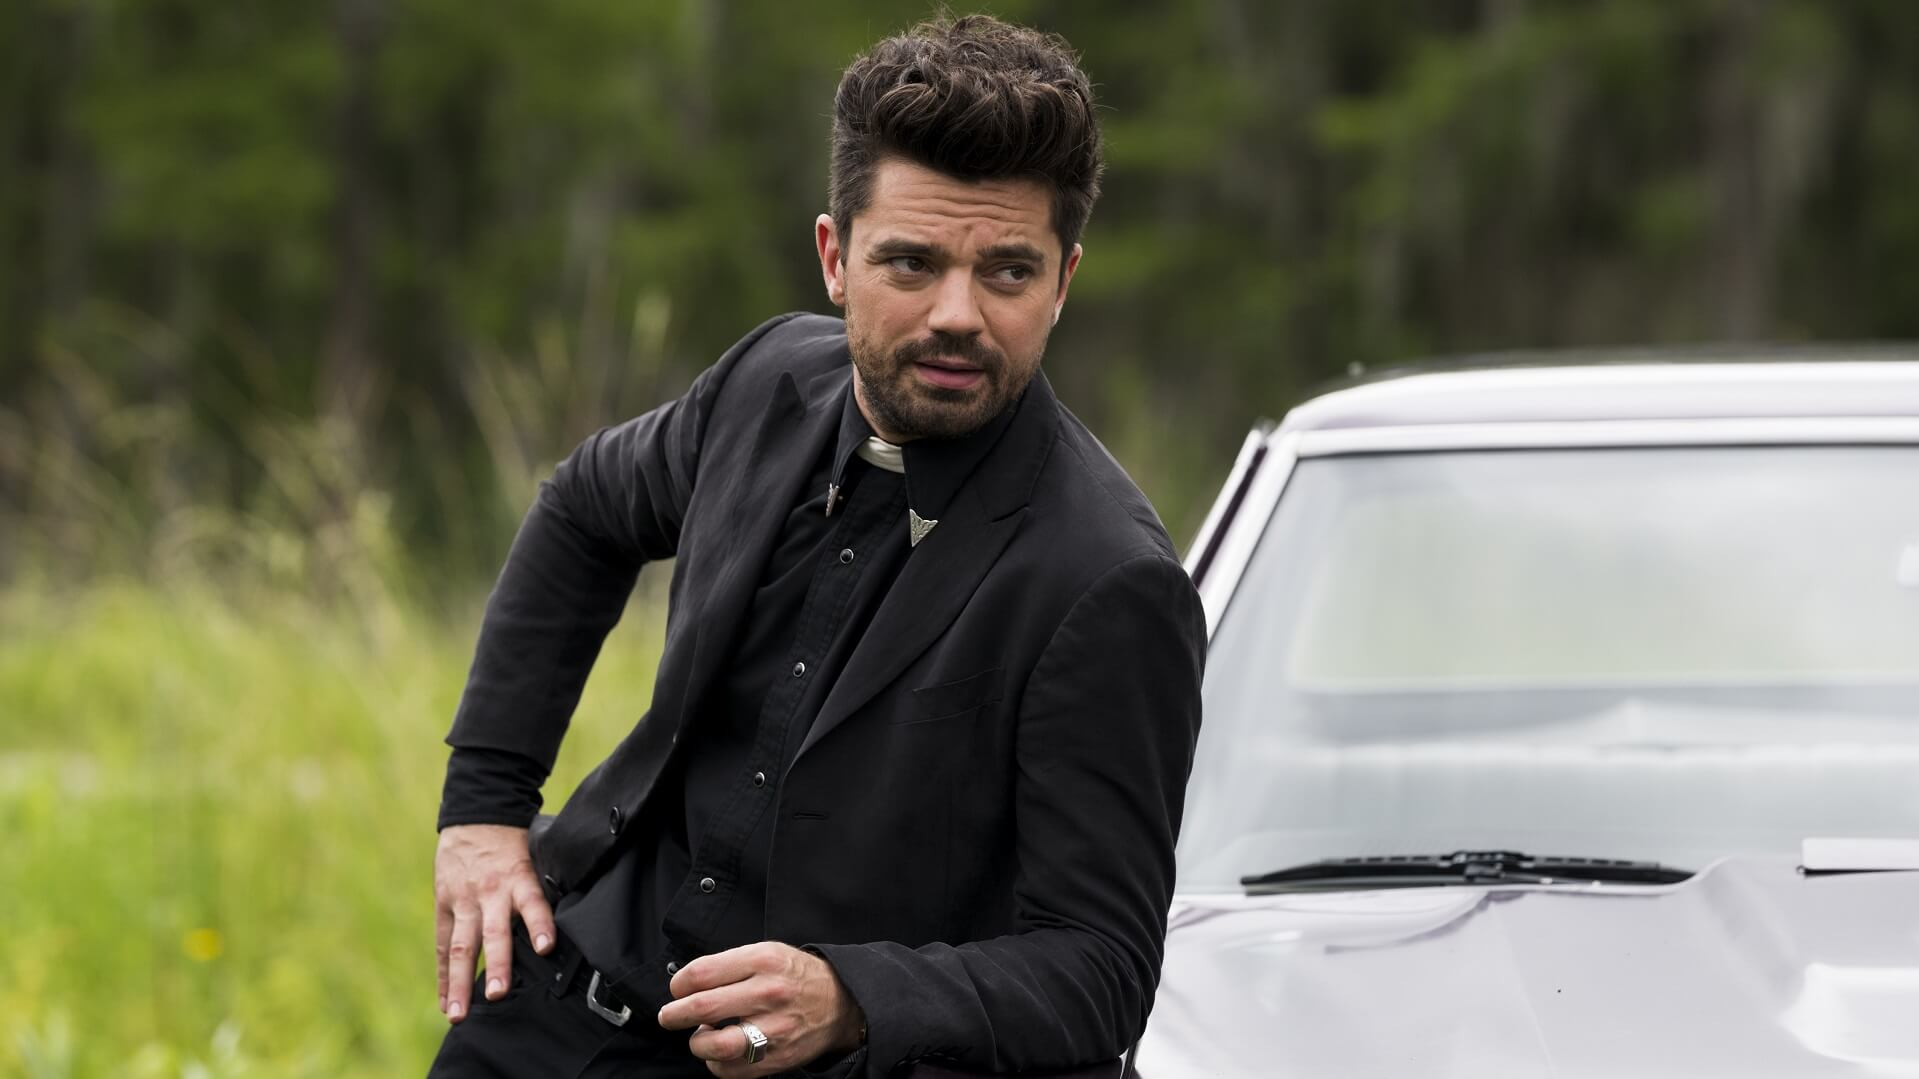 Preacher: Backdoors Review